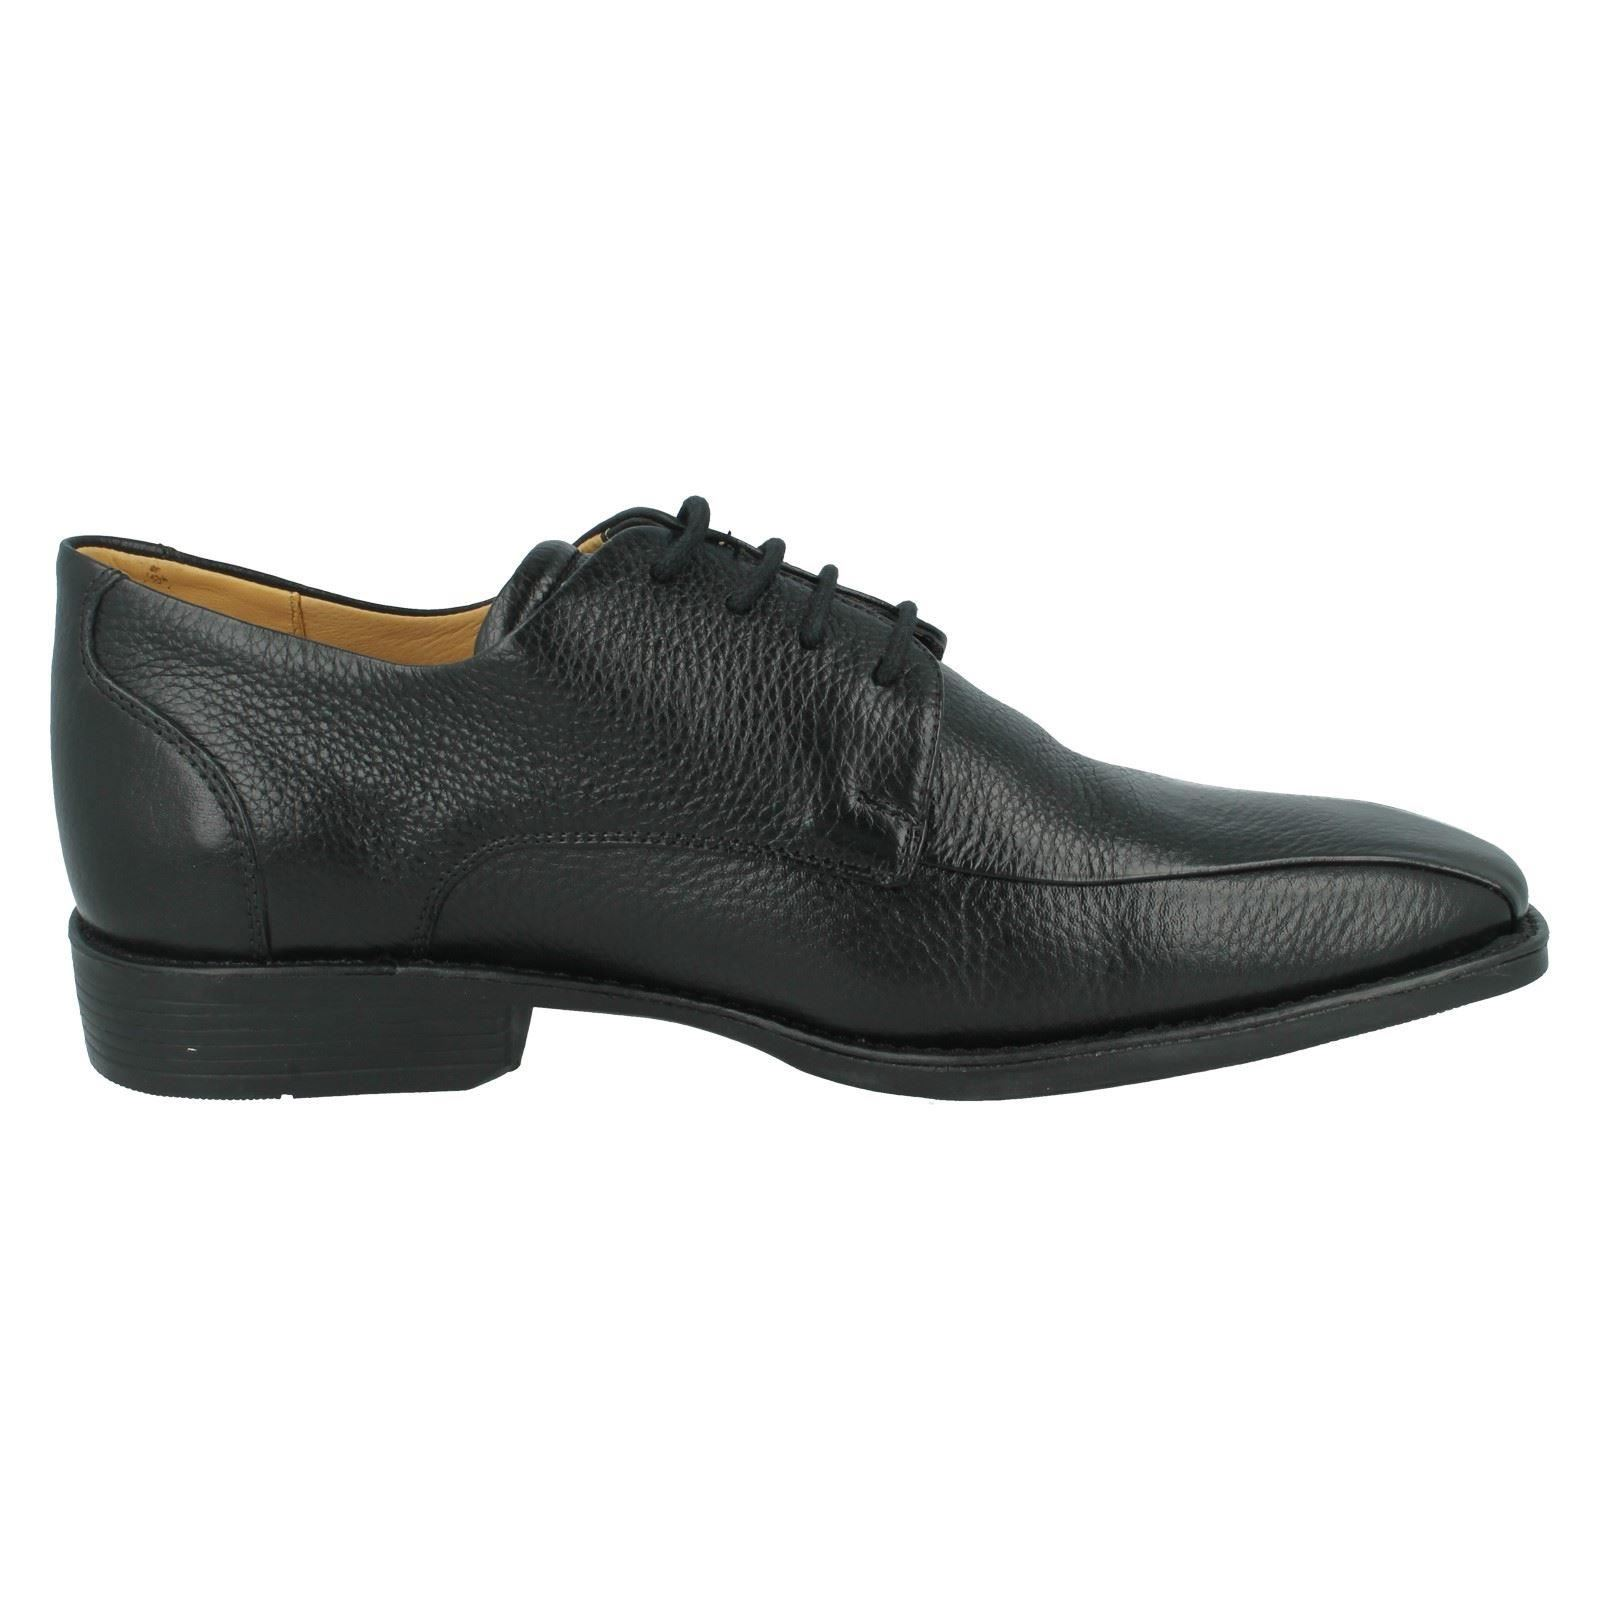 Herren Anatomic  Co Co Co Leder Schuhes New Bonito a6ccaf